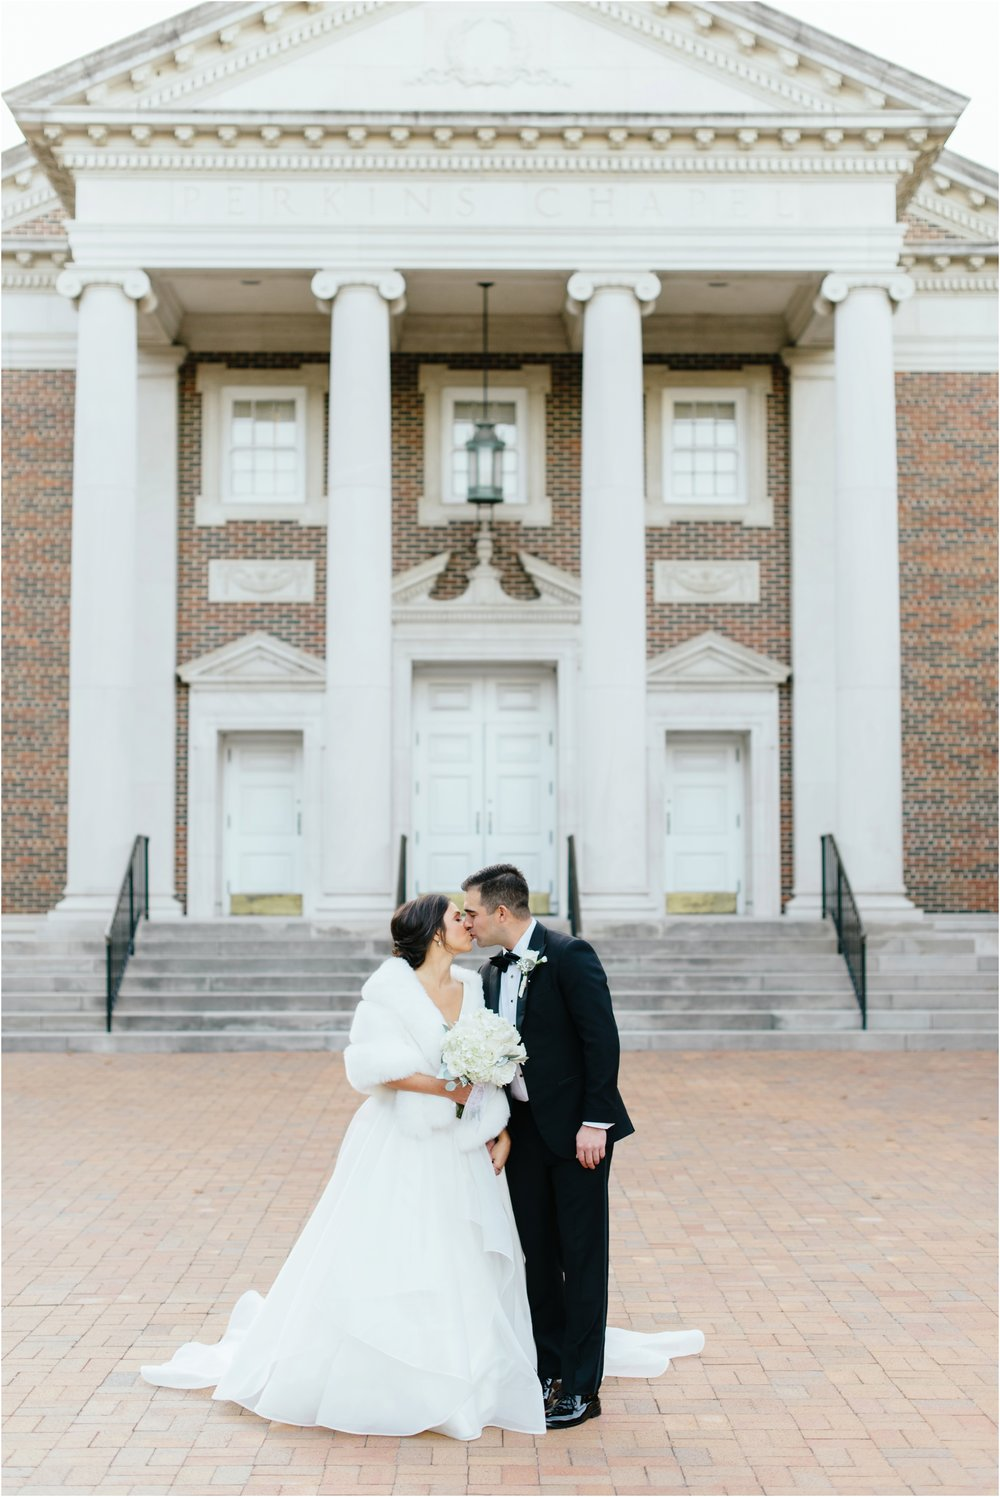 MattandJulieWeddings-RoomonMain-PerkinsChapelWedding-DallasWeddings23.jpg